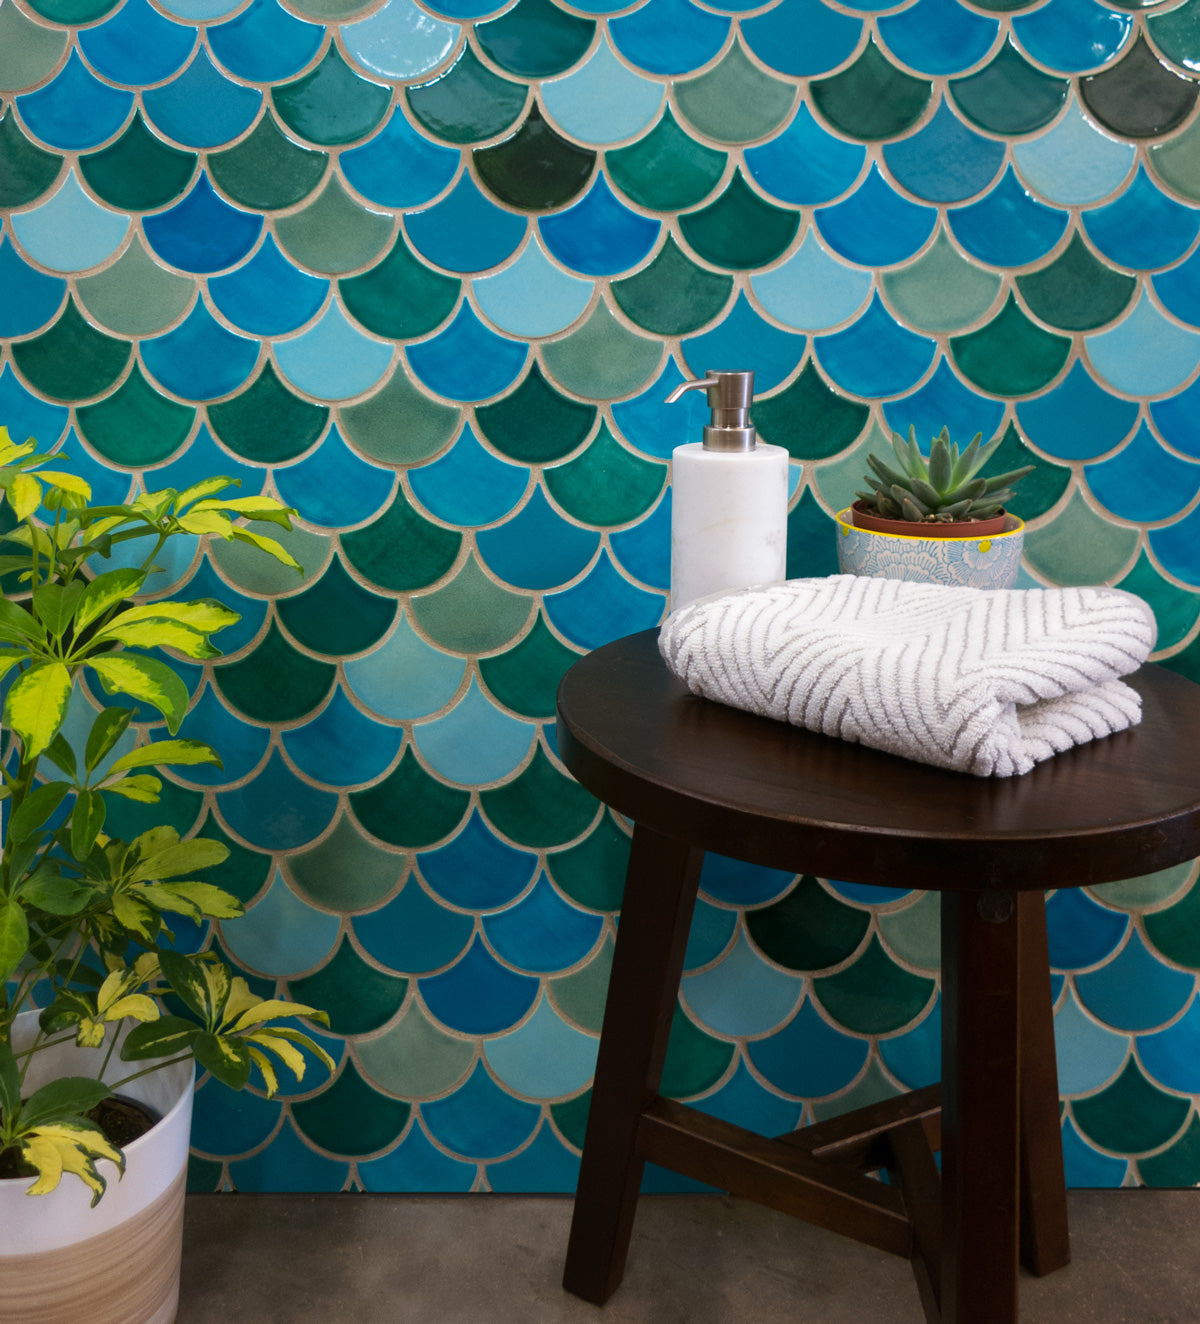 5-ways-to-create-a-dreamy-moroccan-space 5 Ways to Create a Dreamy Moroccan Escape All Bathrooms Kitchens Tile Inspiration   michellegage1 5 Ways to Create a Dreamy Moroccan Escape All Bathrooms Kitchens Tile Inspiration   Moroccan-Fish-Scales 5 Ways to Create a Dreamy Moroccan Escape All Bathrooms Kitchens Tile Inspiration   Blumenthal4 5 Ways to Create a Dreamy Moroccan Escape All Bathrooms Kitchens Tile Inspiration   white-moroccan-circles 5 Ways to Create a Dreamy Moroccan Escape All Bathrooms Kitchens Tile Inspiration   MediterraneanBlendStyled-1100x1169-Web 5 Ways to Create a Dreamy Moroccan Escape All Bathrooms Kitchens Tile Inspiration